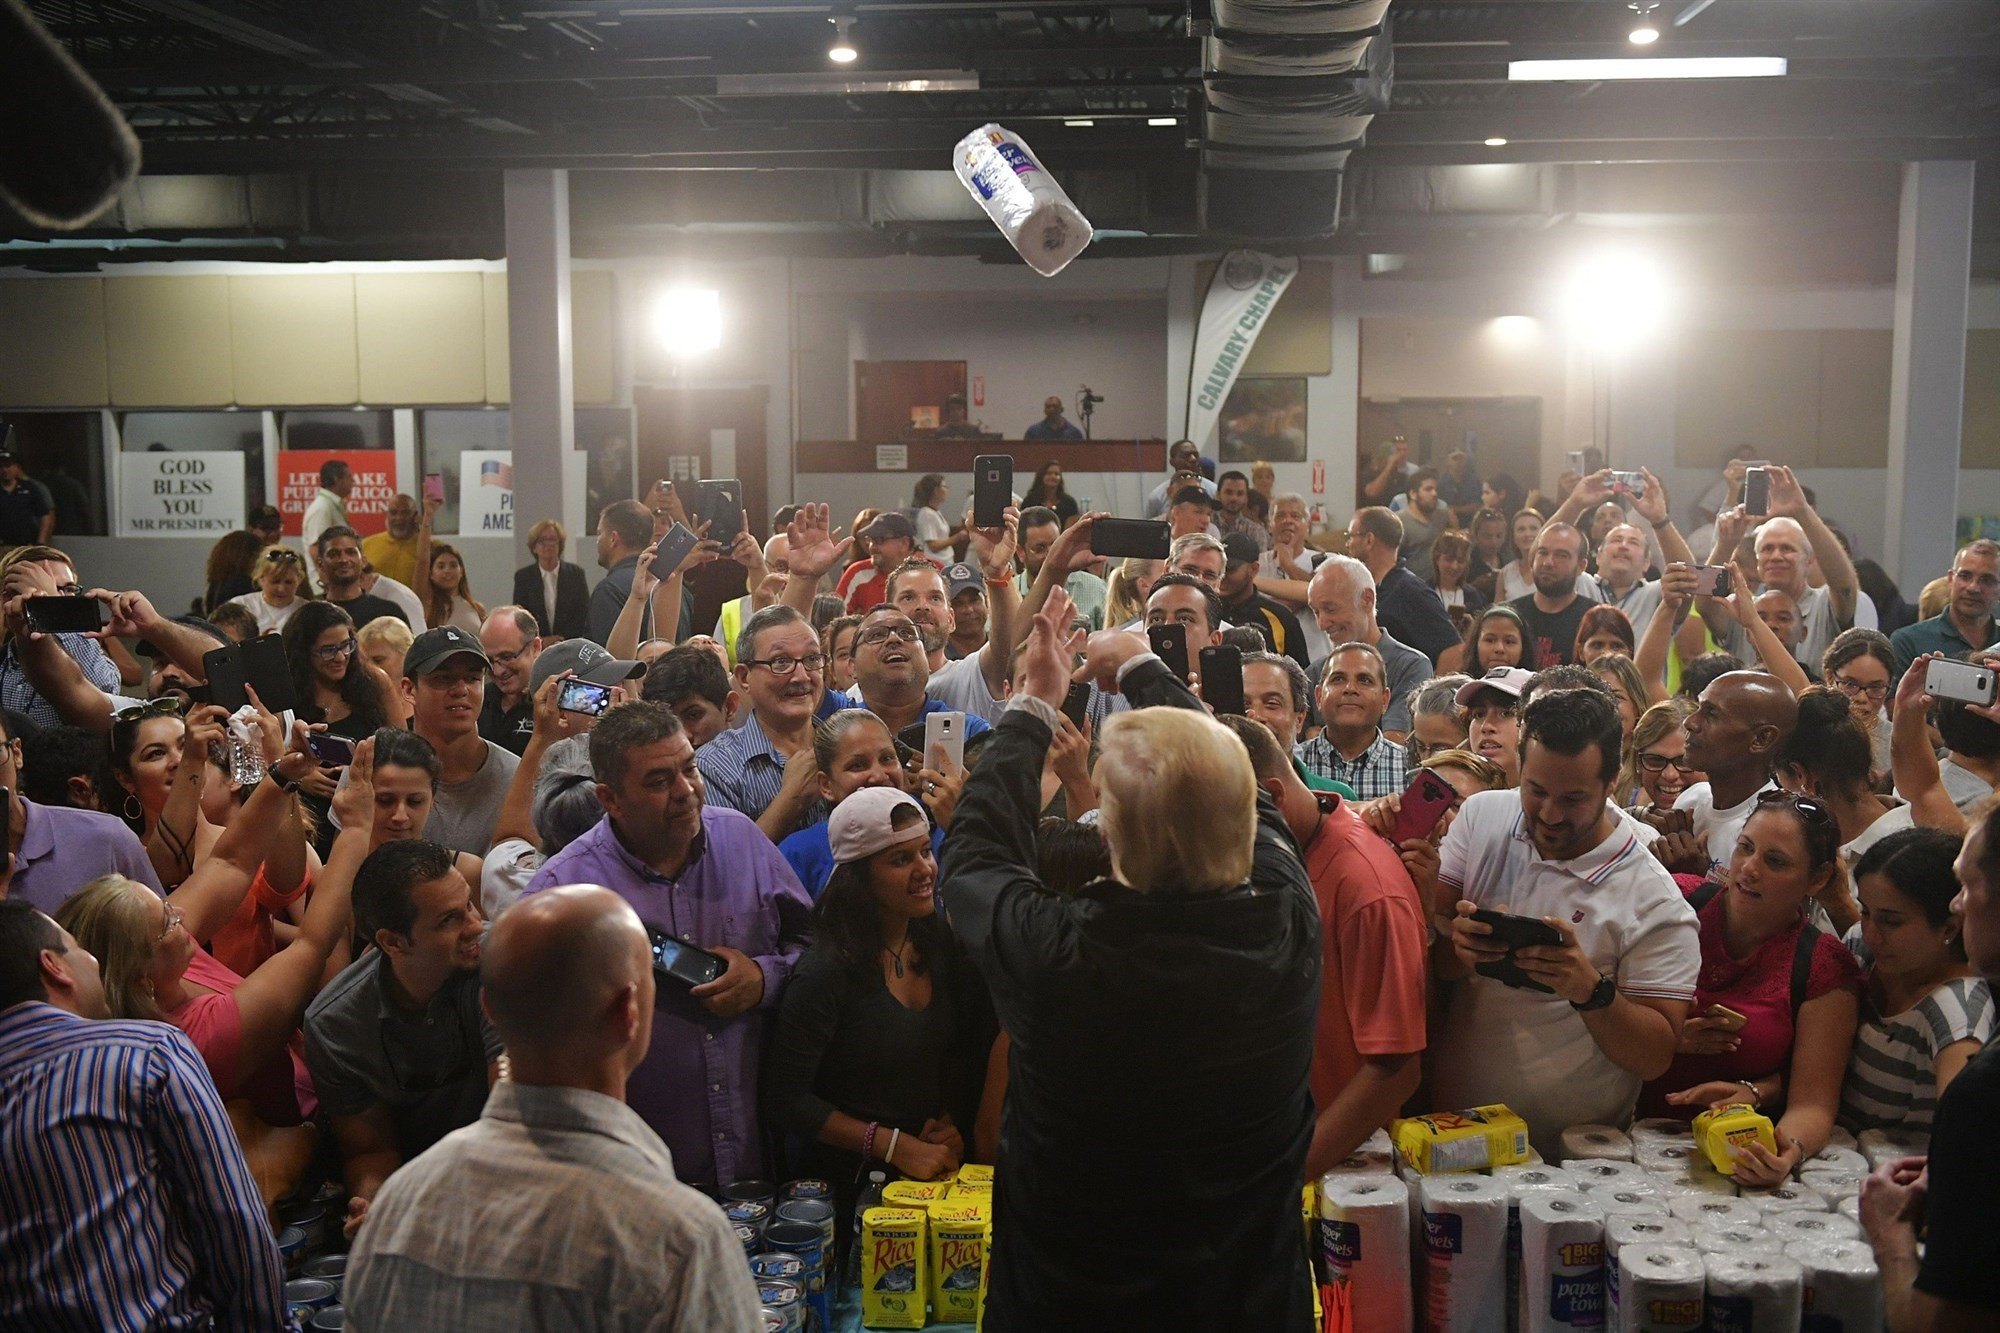 Trump throws a roll of paper towels at a press conference in Puerto Rico following the hurricane - NBC